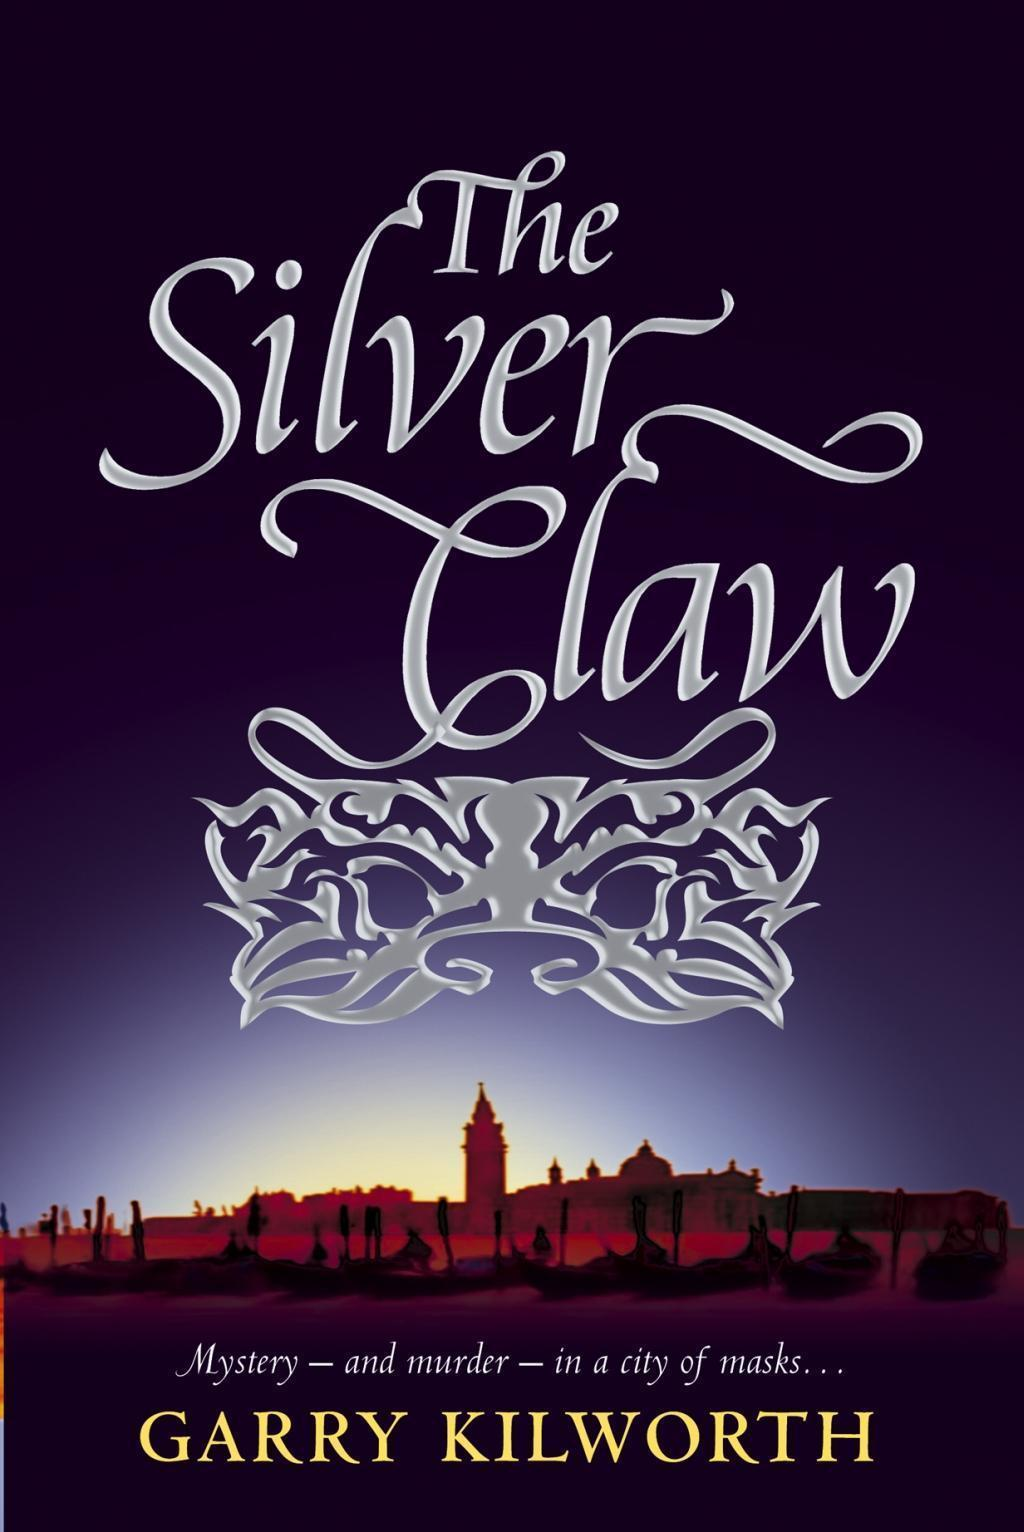 The Silver Claw